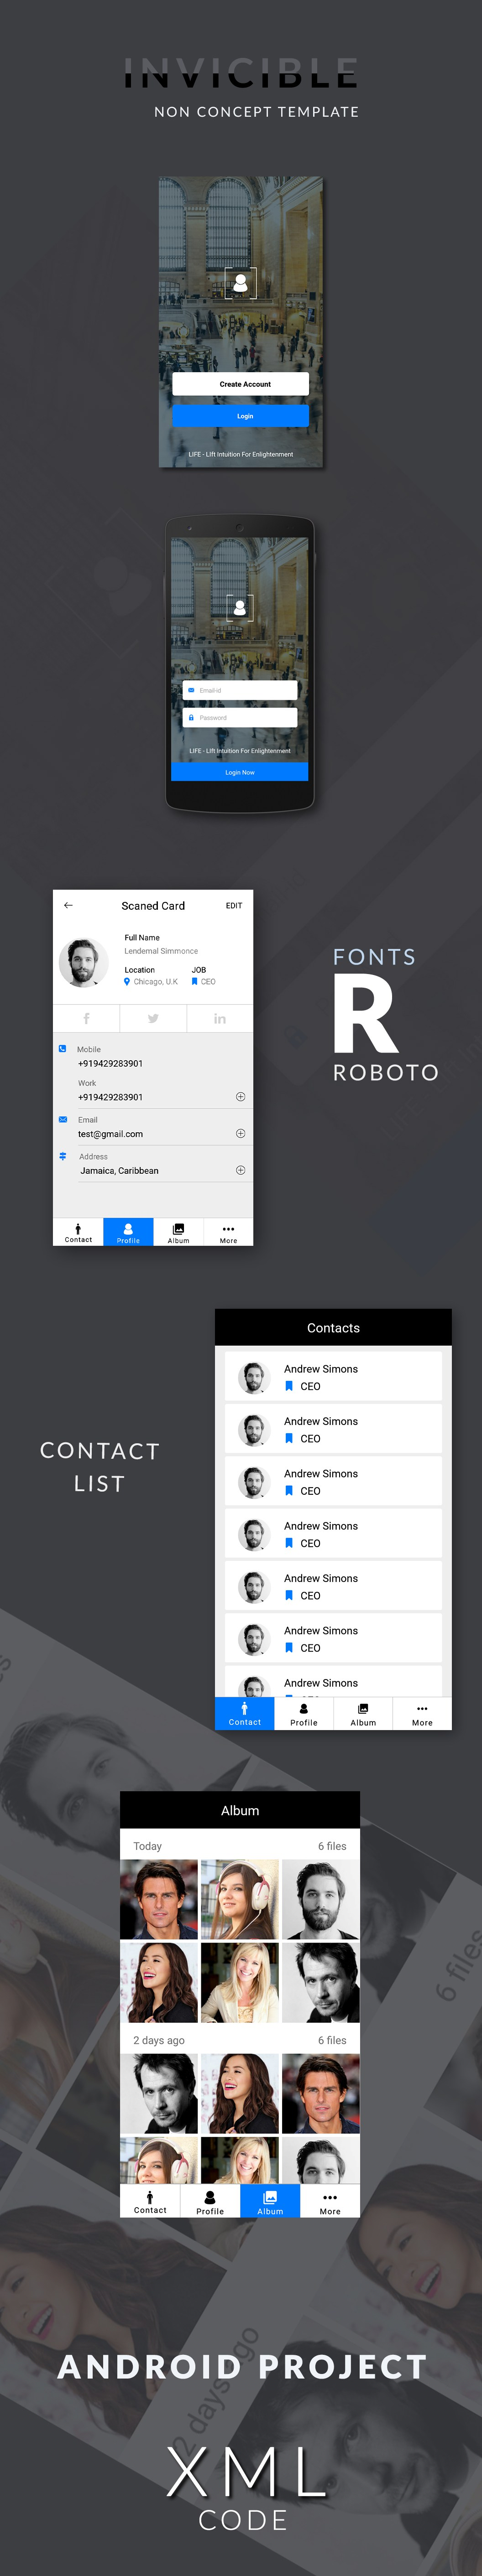 free download ui kit ready xml source code from www wsdesign in